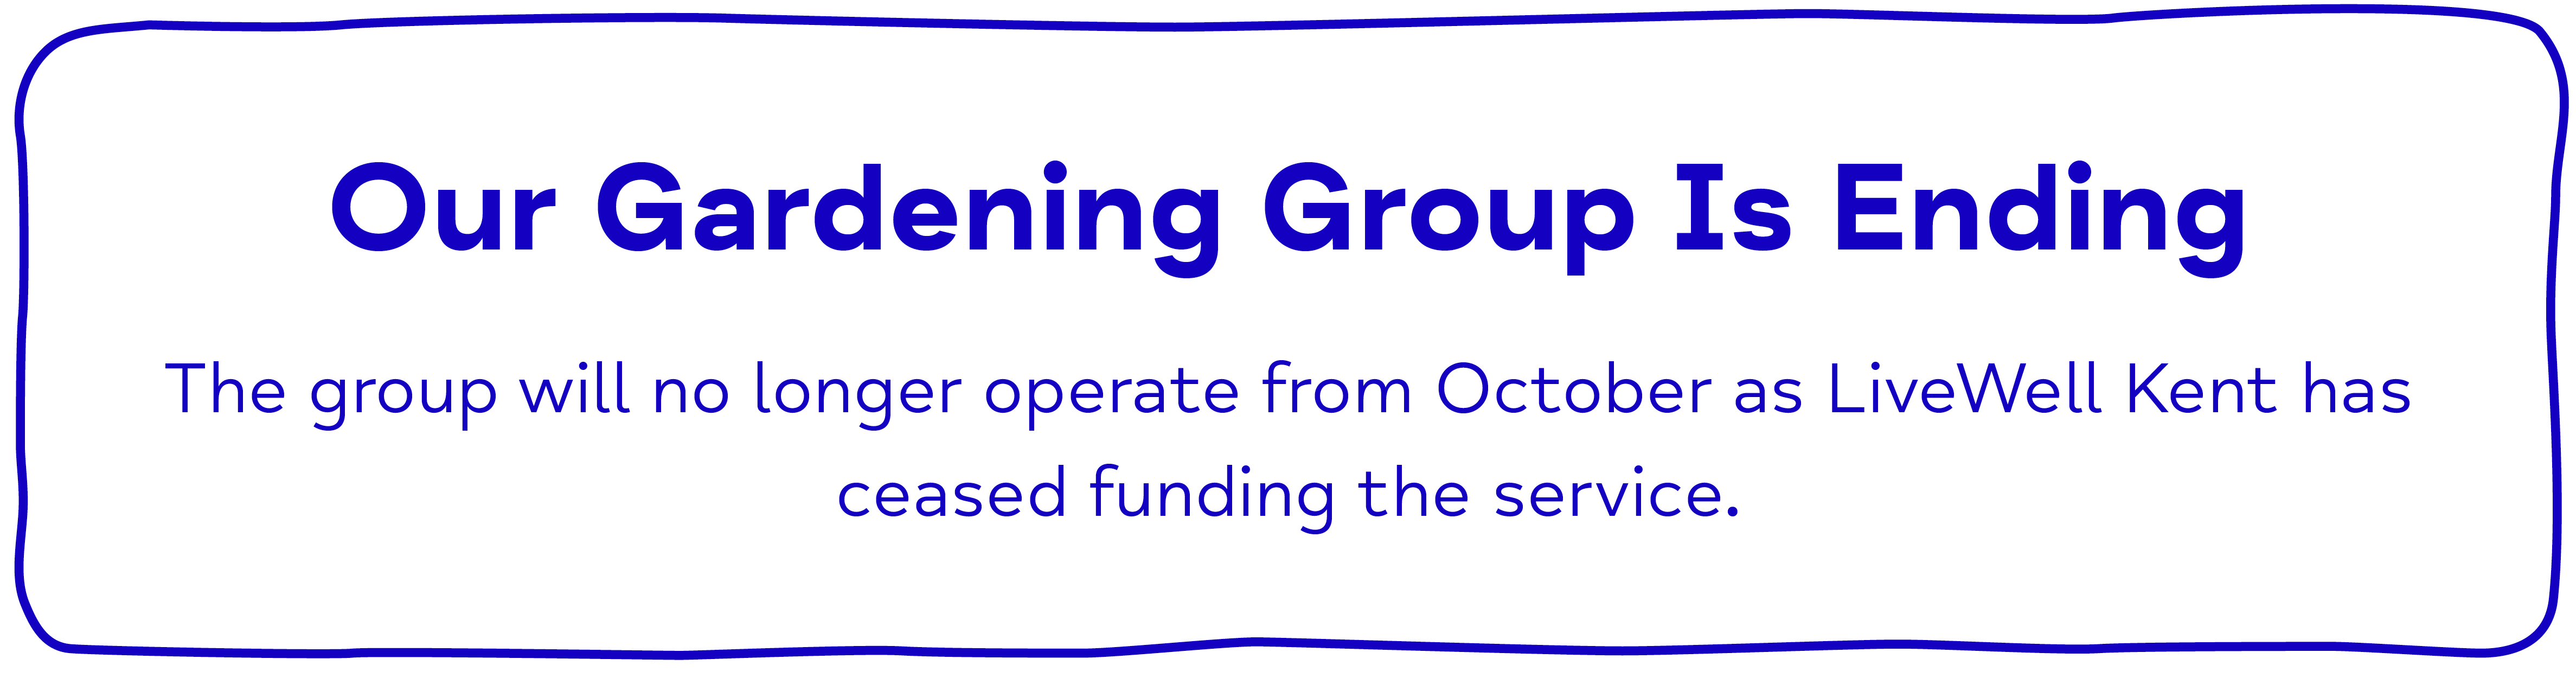 Our Gardening Group Is Ending The group will no longer operate from October as LiveWell Kent has ceased funding the service.